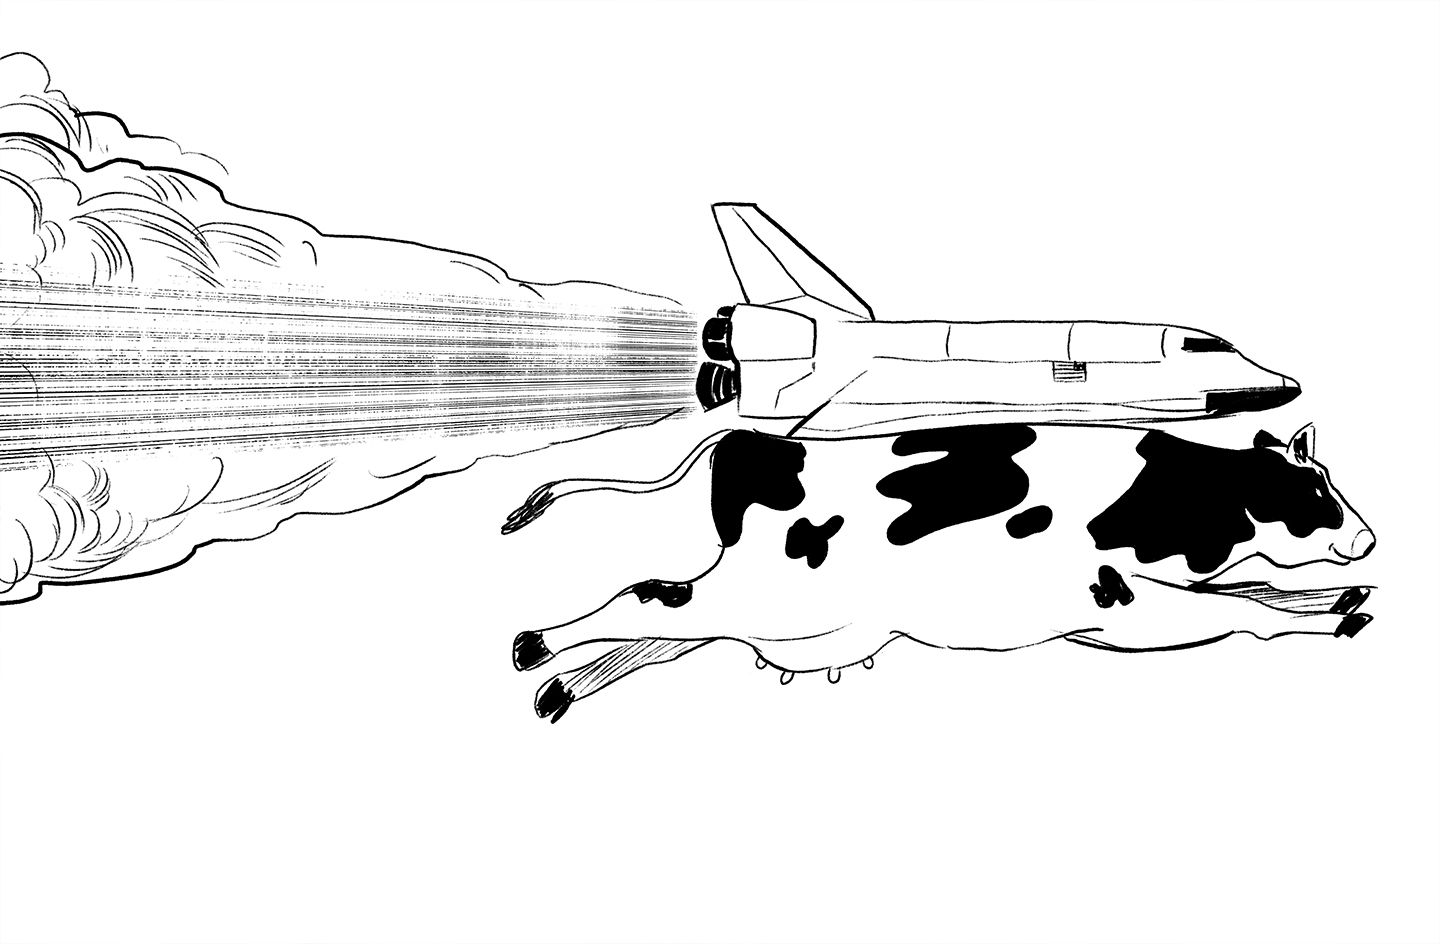 Greek Yogurt Waste Could Be Used In Jet Fuel And Livestock